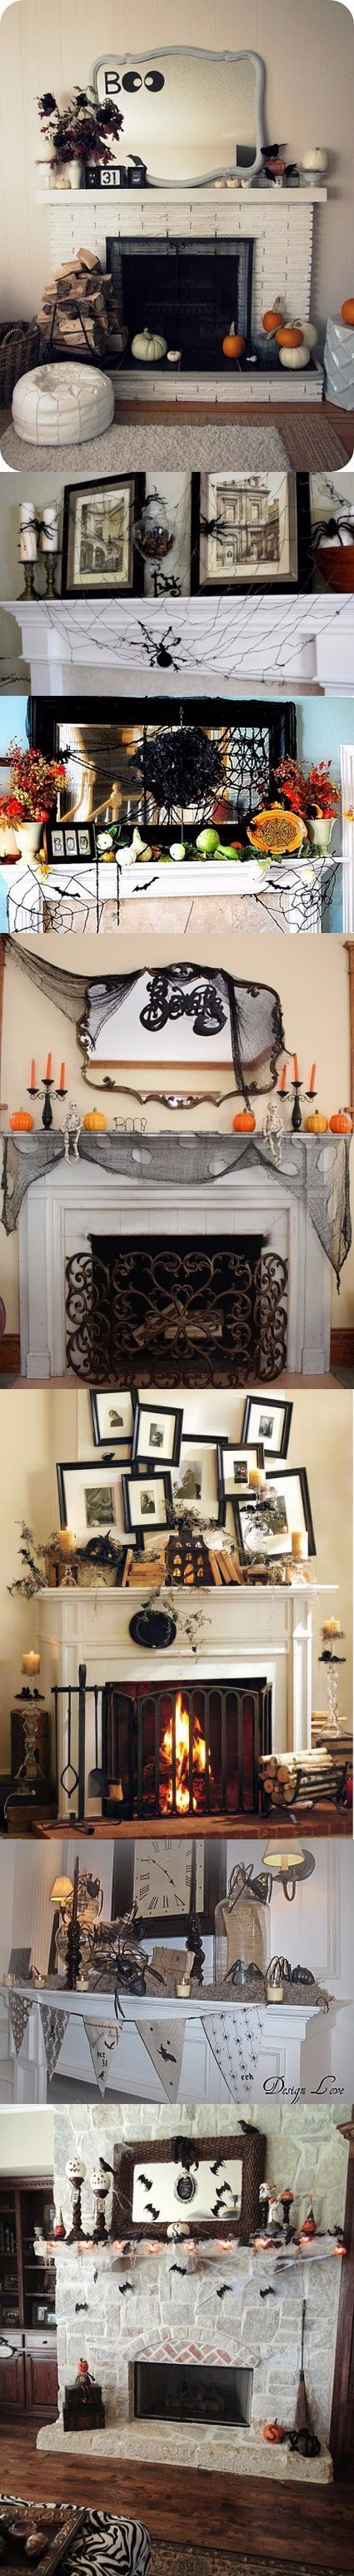 DecoracionChimeneasHalloween